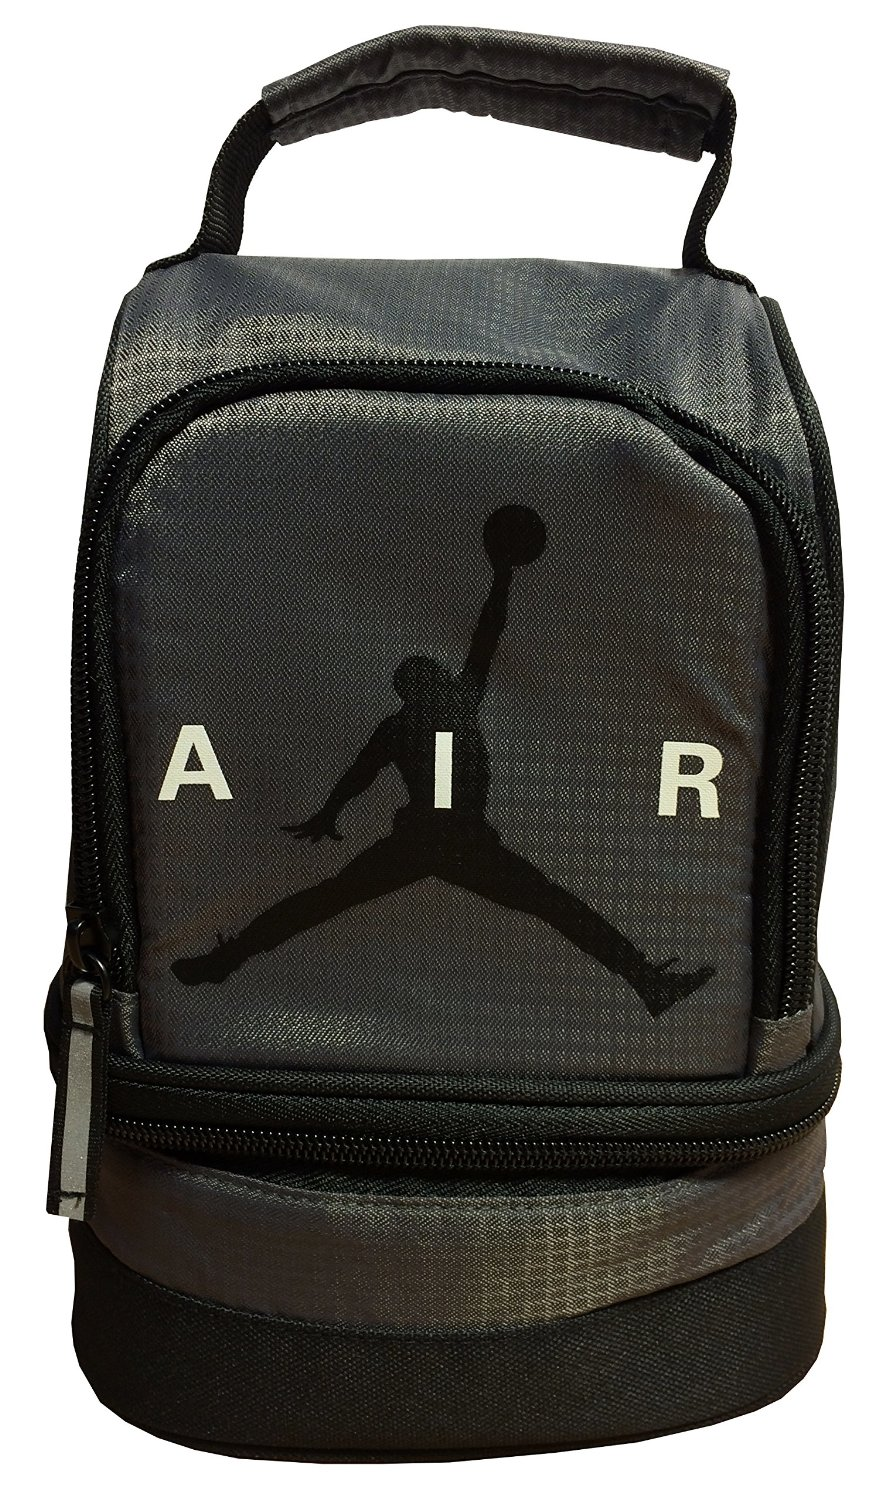 f58b412550 Get Quotations · Nike Air Jordan Dome Lunch Bag - Gray